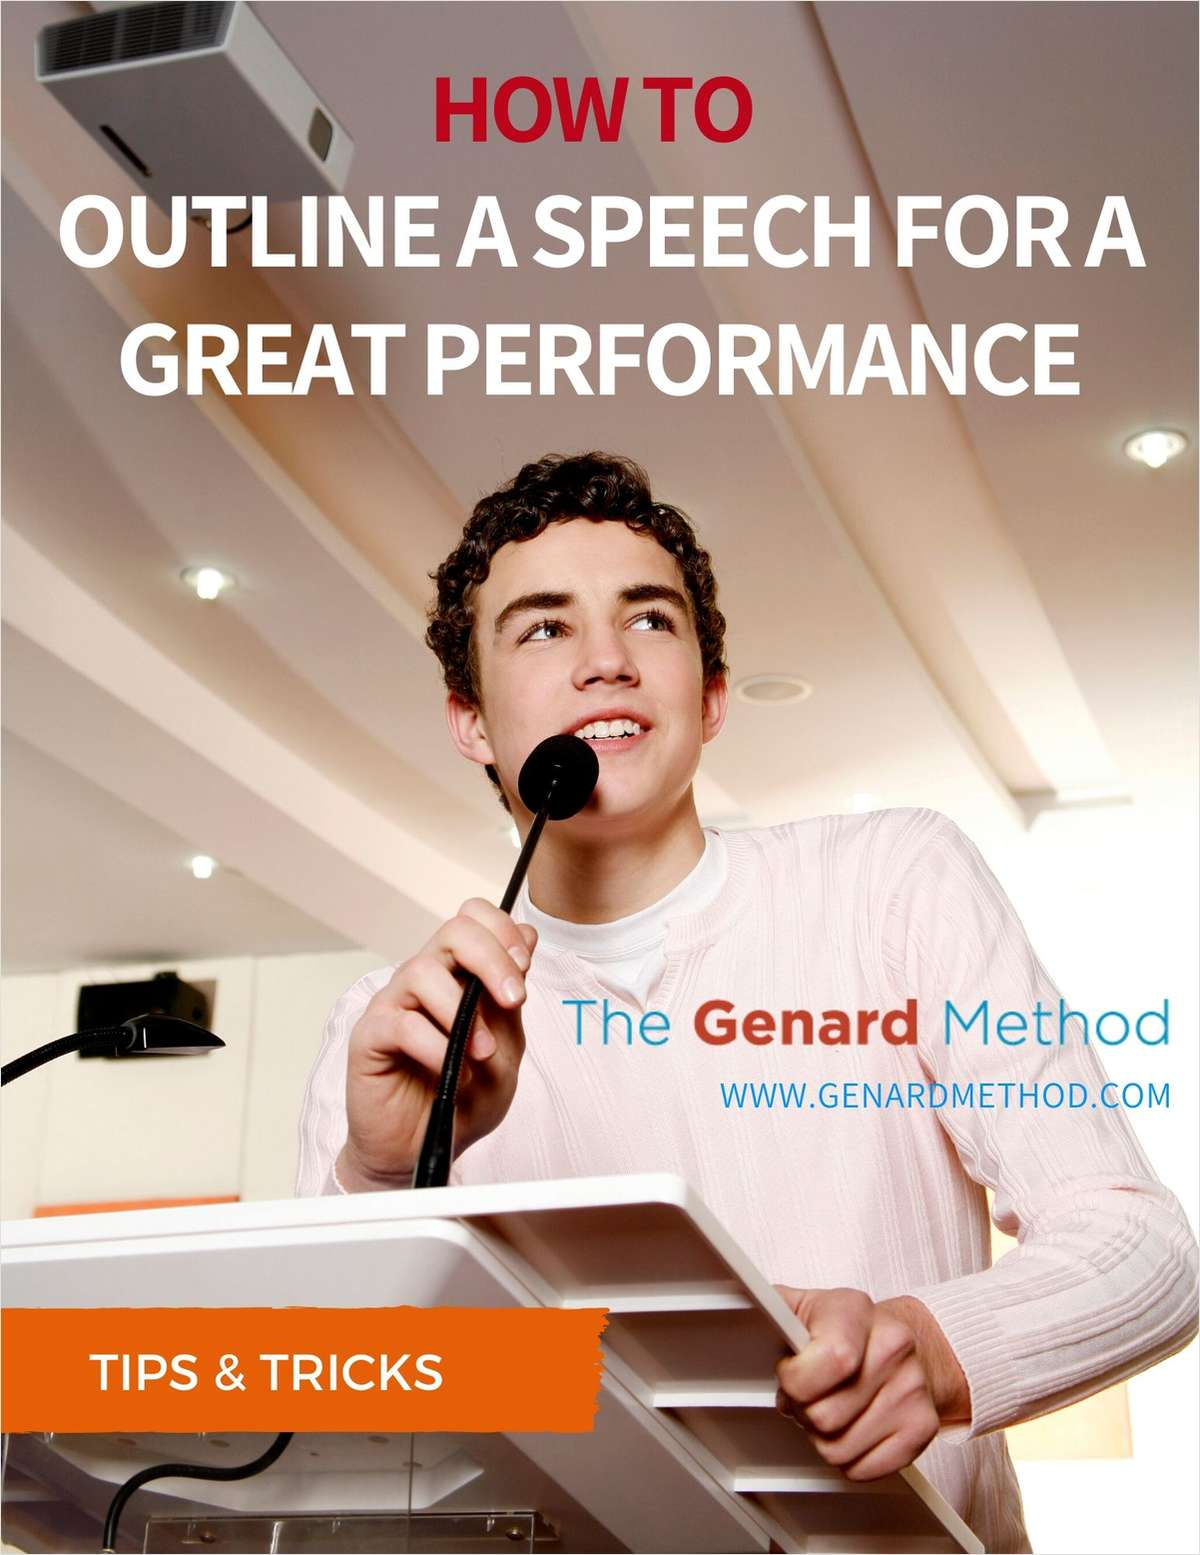 How to Outline a Speech for a Great Performance